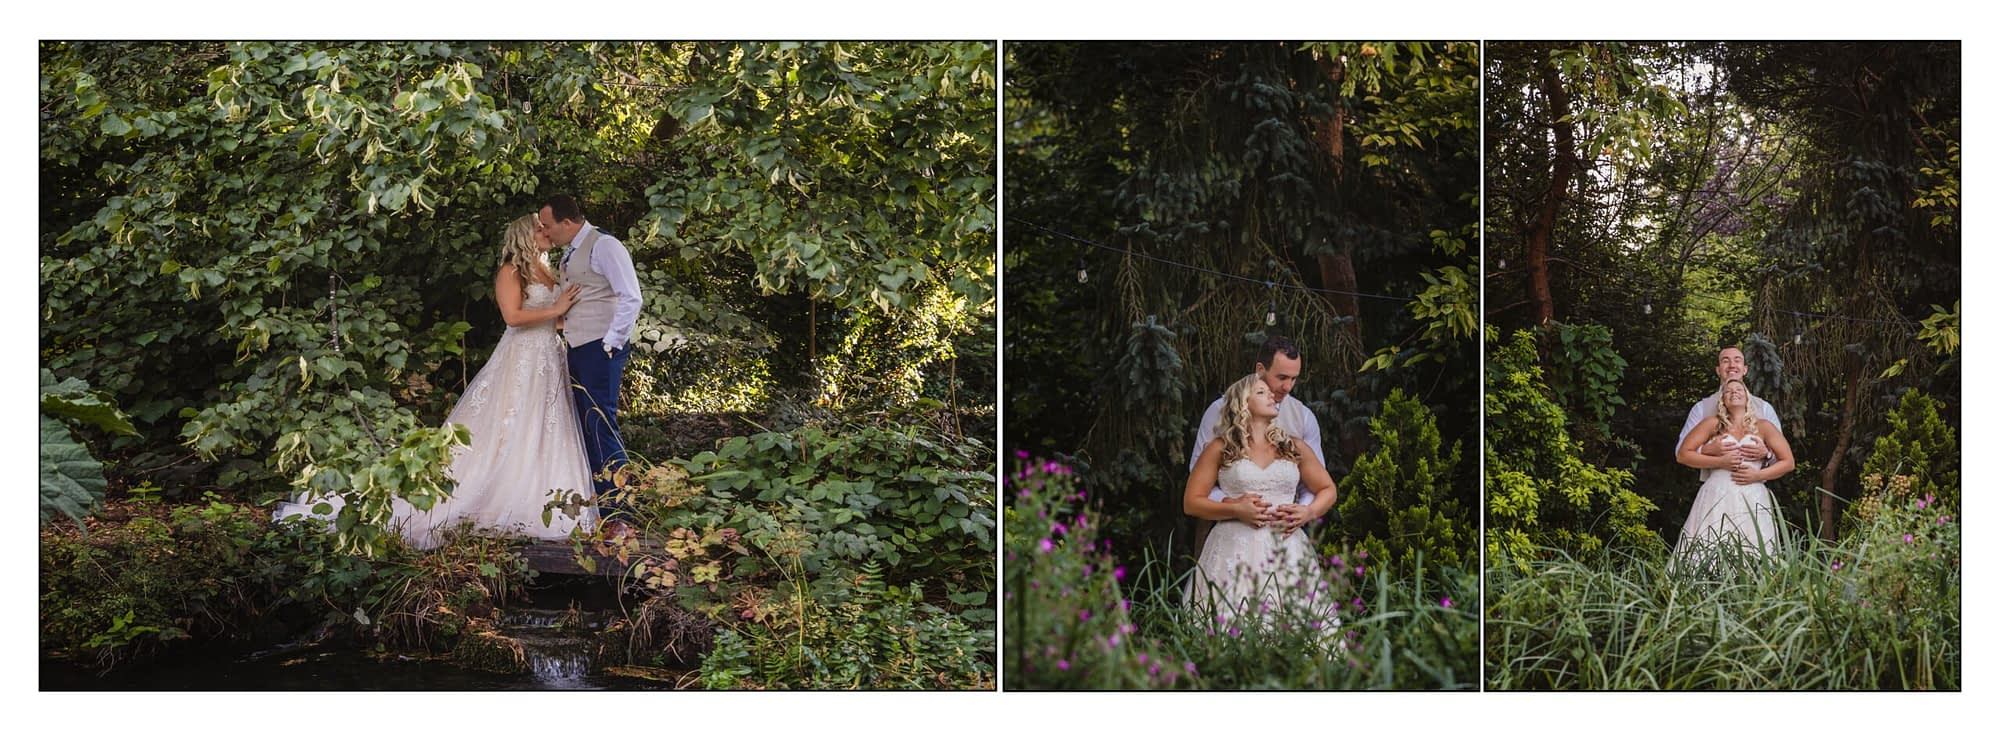 bride and groom together in trees and bushes